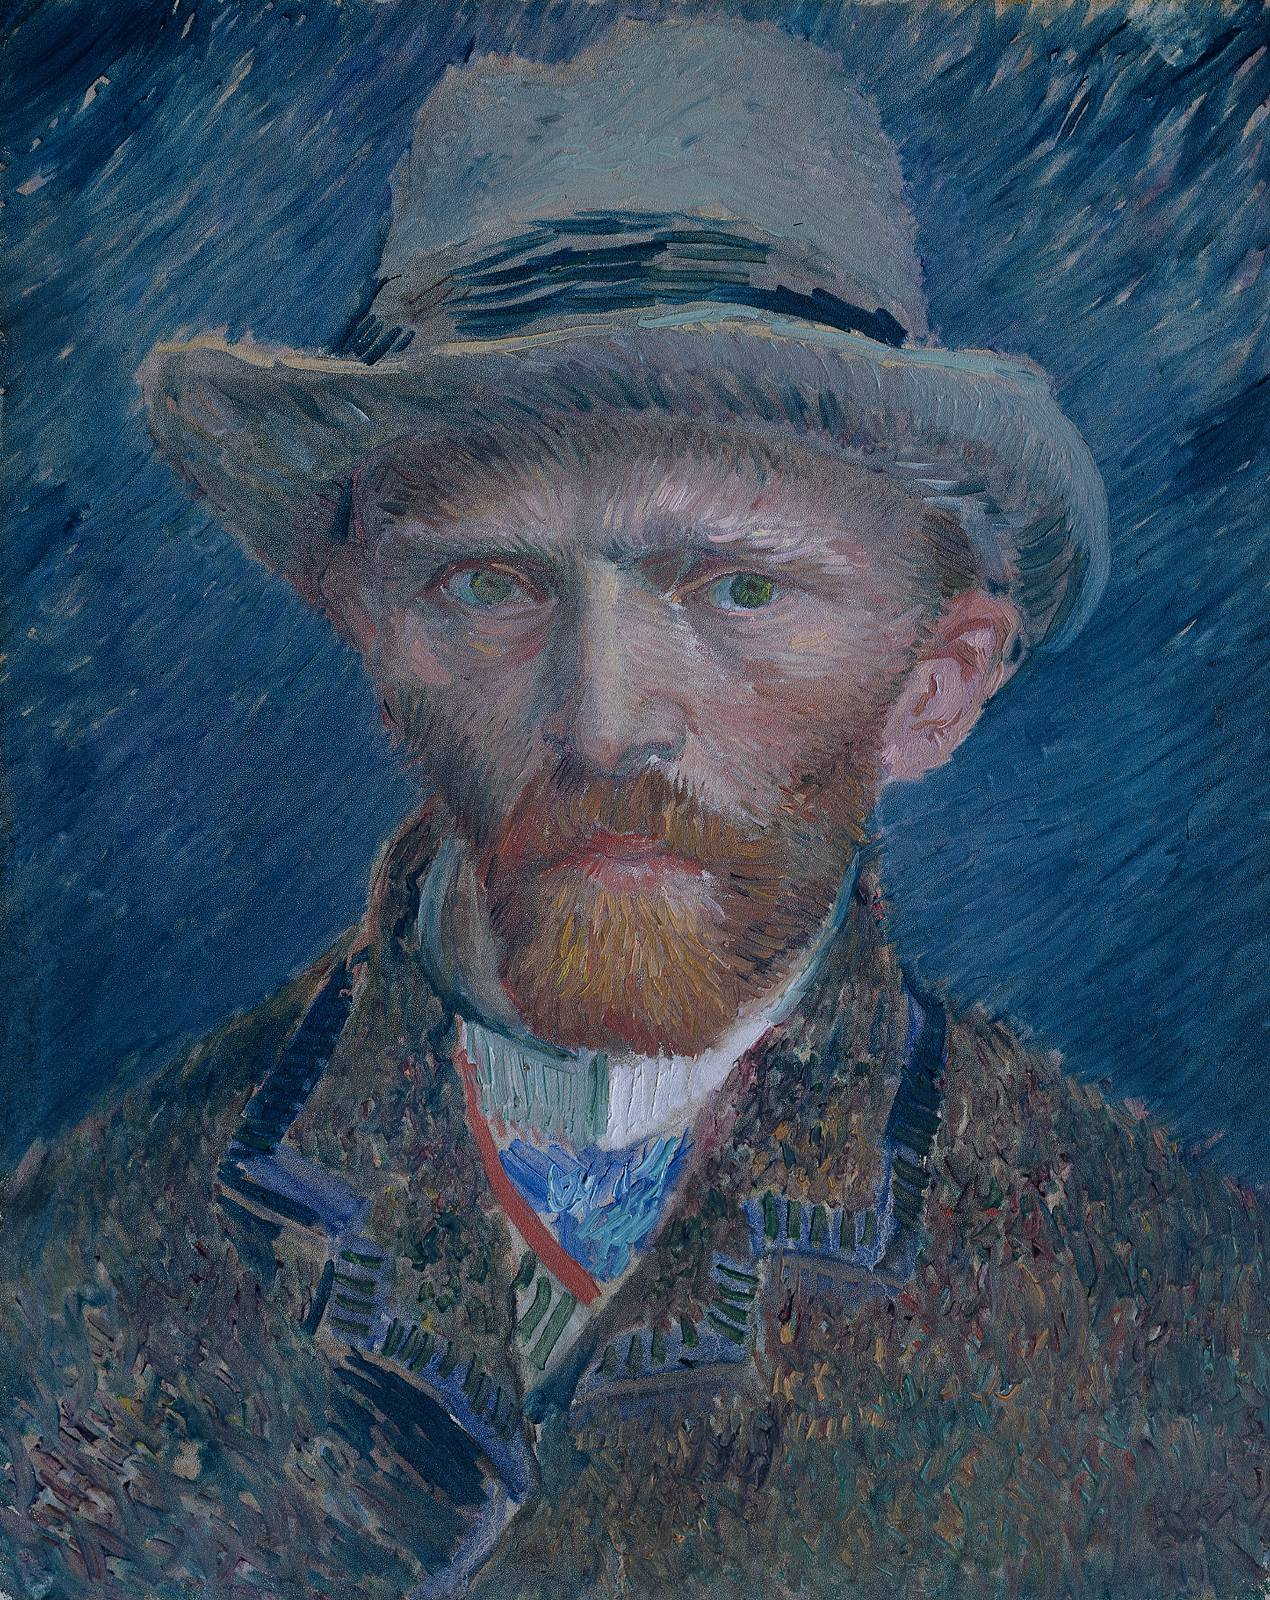 van gogh vincent self portrait « Vincent van Gogh (1853 ...